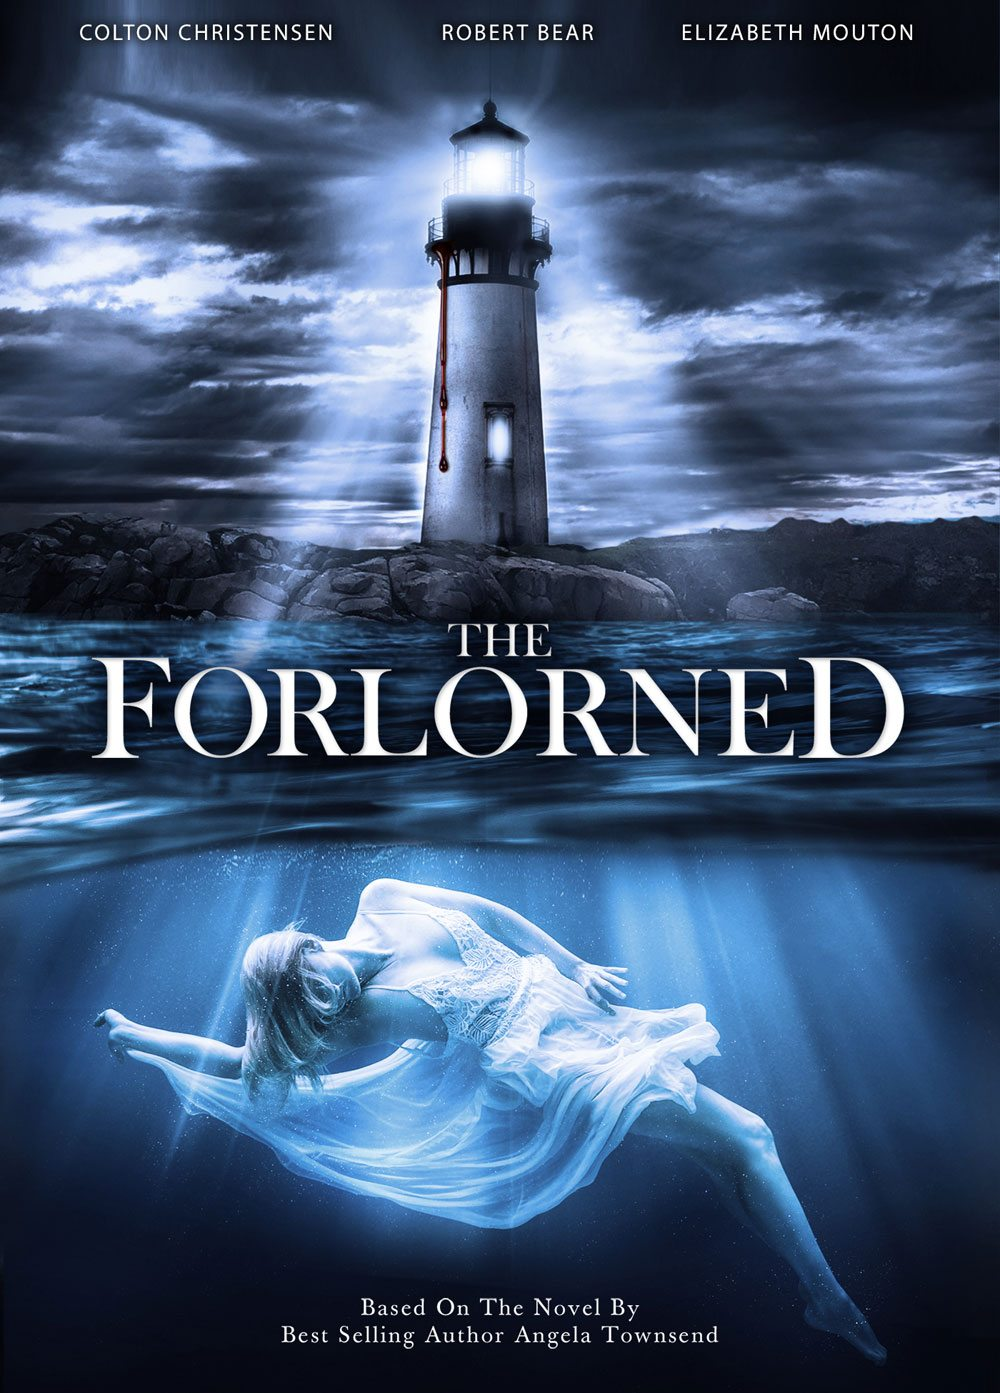 forlorned - The Forlorned Awaits You on VOD/Digital Starting Today